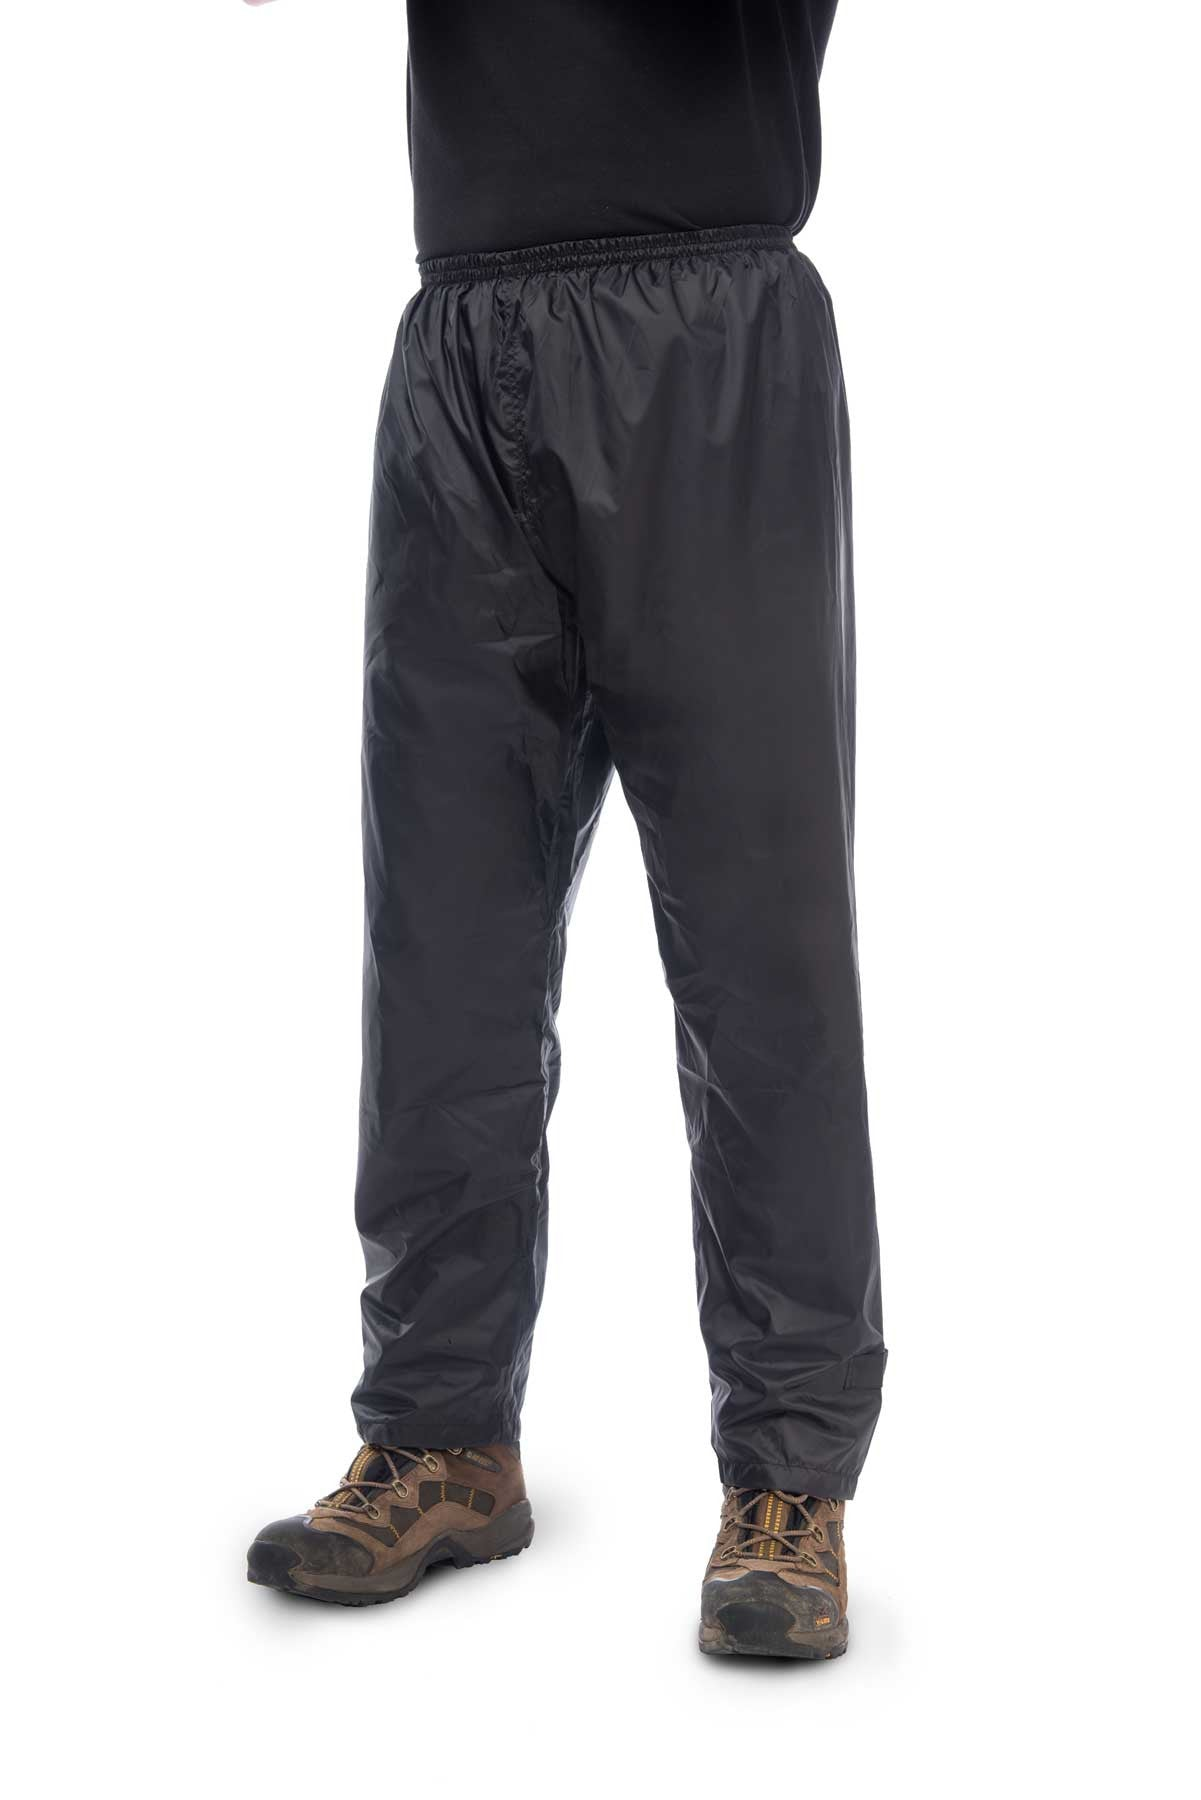 Mac in a Sac Origin Waterproof Packaway Overtrousers in Jet Black, Front View, Modelled